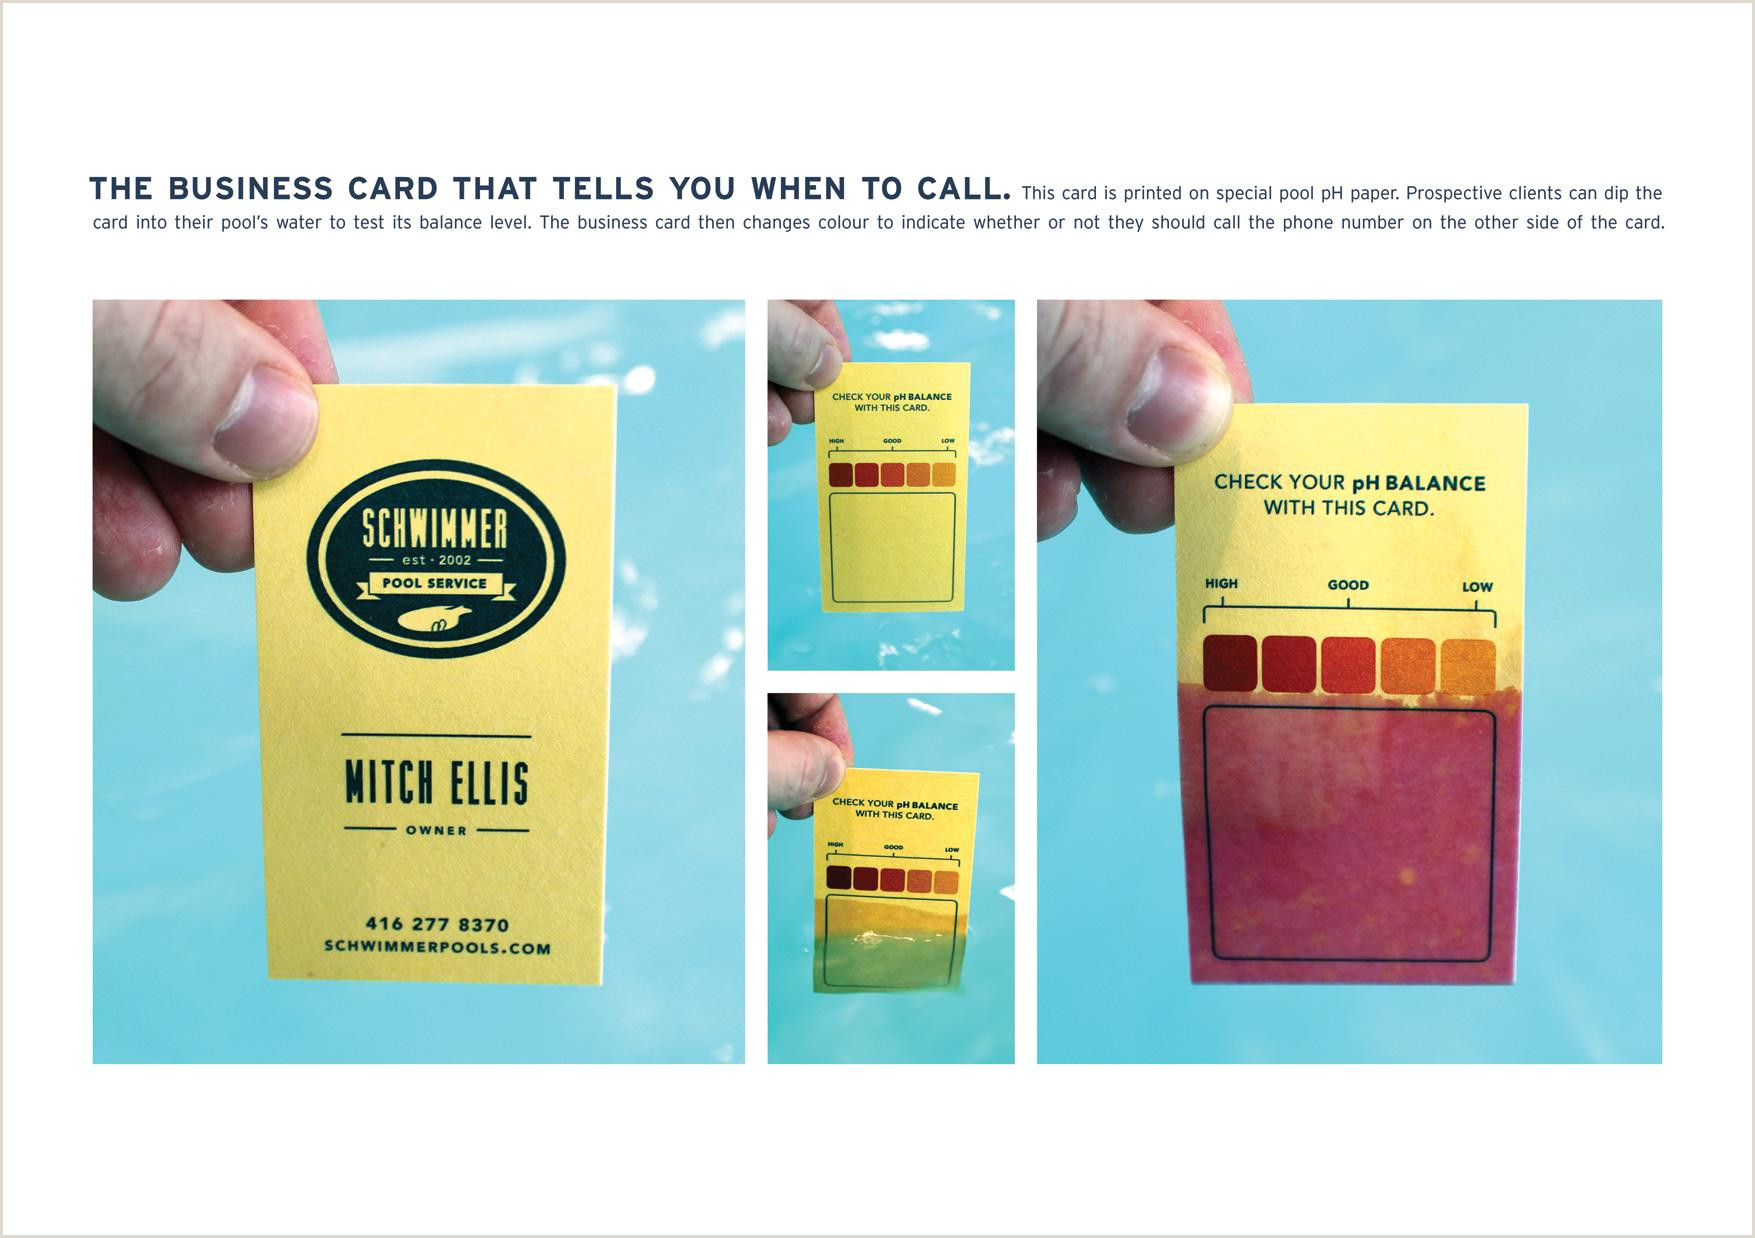 Best Business Cards By Experts 30 Business Card Design Ideas That Will Get Everyone Talking